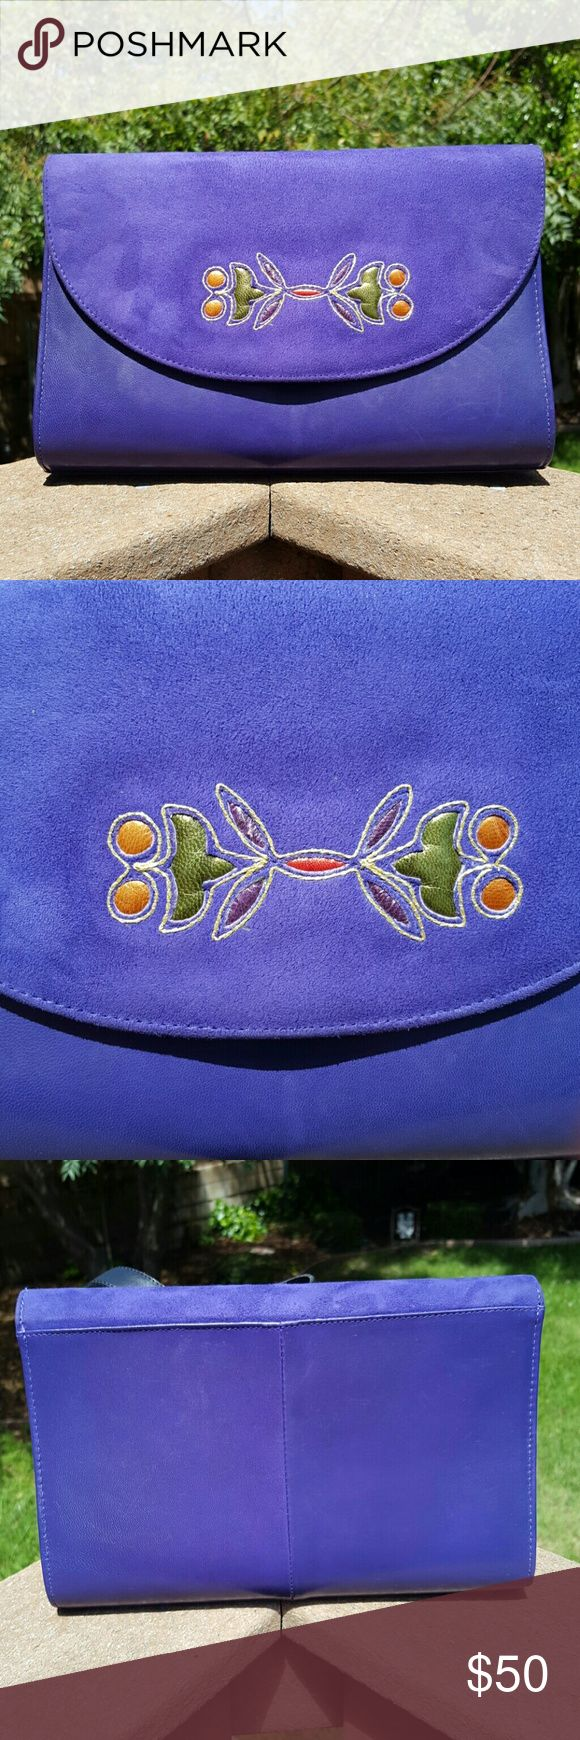 Vintage Purple Clutch / Purse Gorgeous deep purple clutch / purse with appliqu?. Strap is easily able to be tucked away into purse so you can use it as a clutch. Leather strap is adjustable and is long enough to make into a cross body purse. Has a zippered pocket inside of purse and has snap closure. Top part of flap on clutch with design is suede and the rest of clutch is leather. Made in Spain. Vintage item from the 1980s. In excellent condition.   Measurements are  Length - 10 inches…